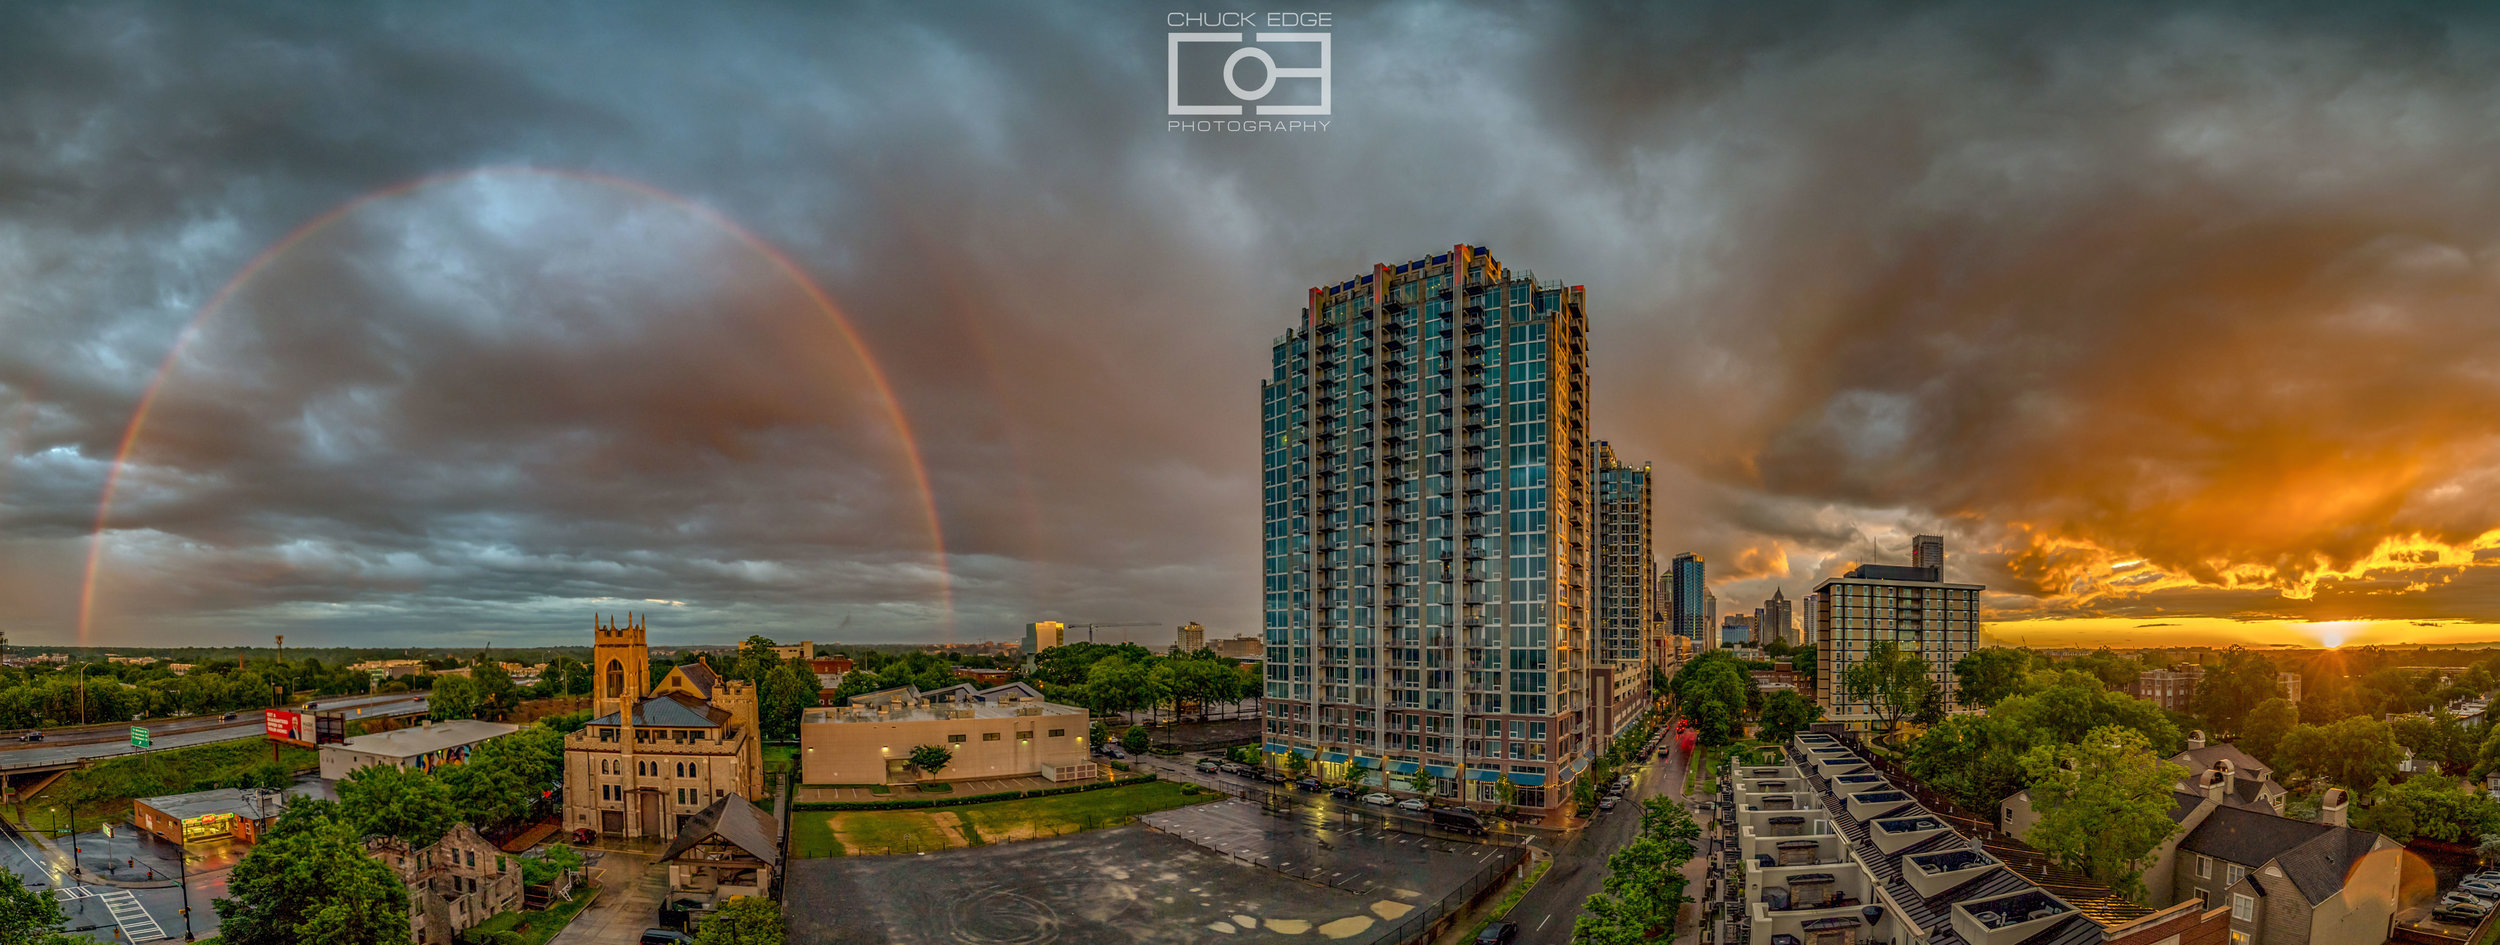 Rainbow sunset. Charlotte, NC. May 5, 2019